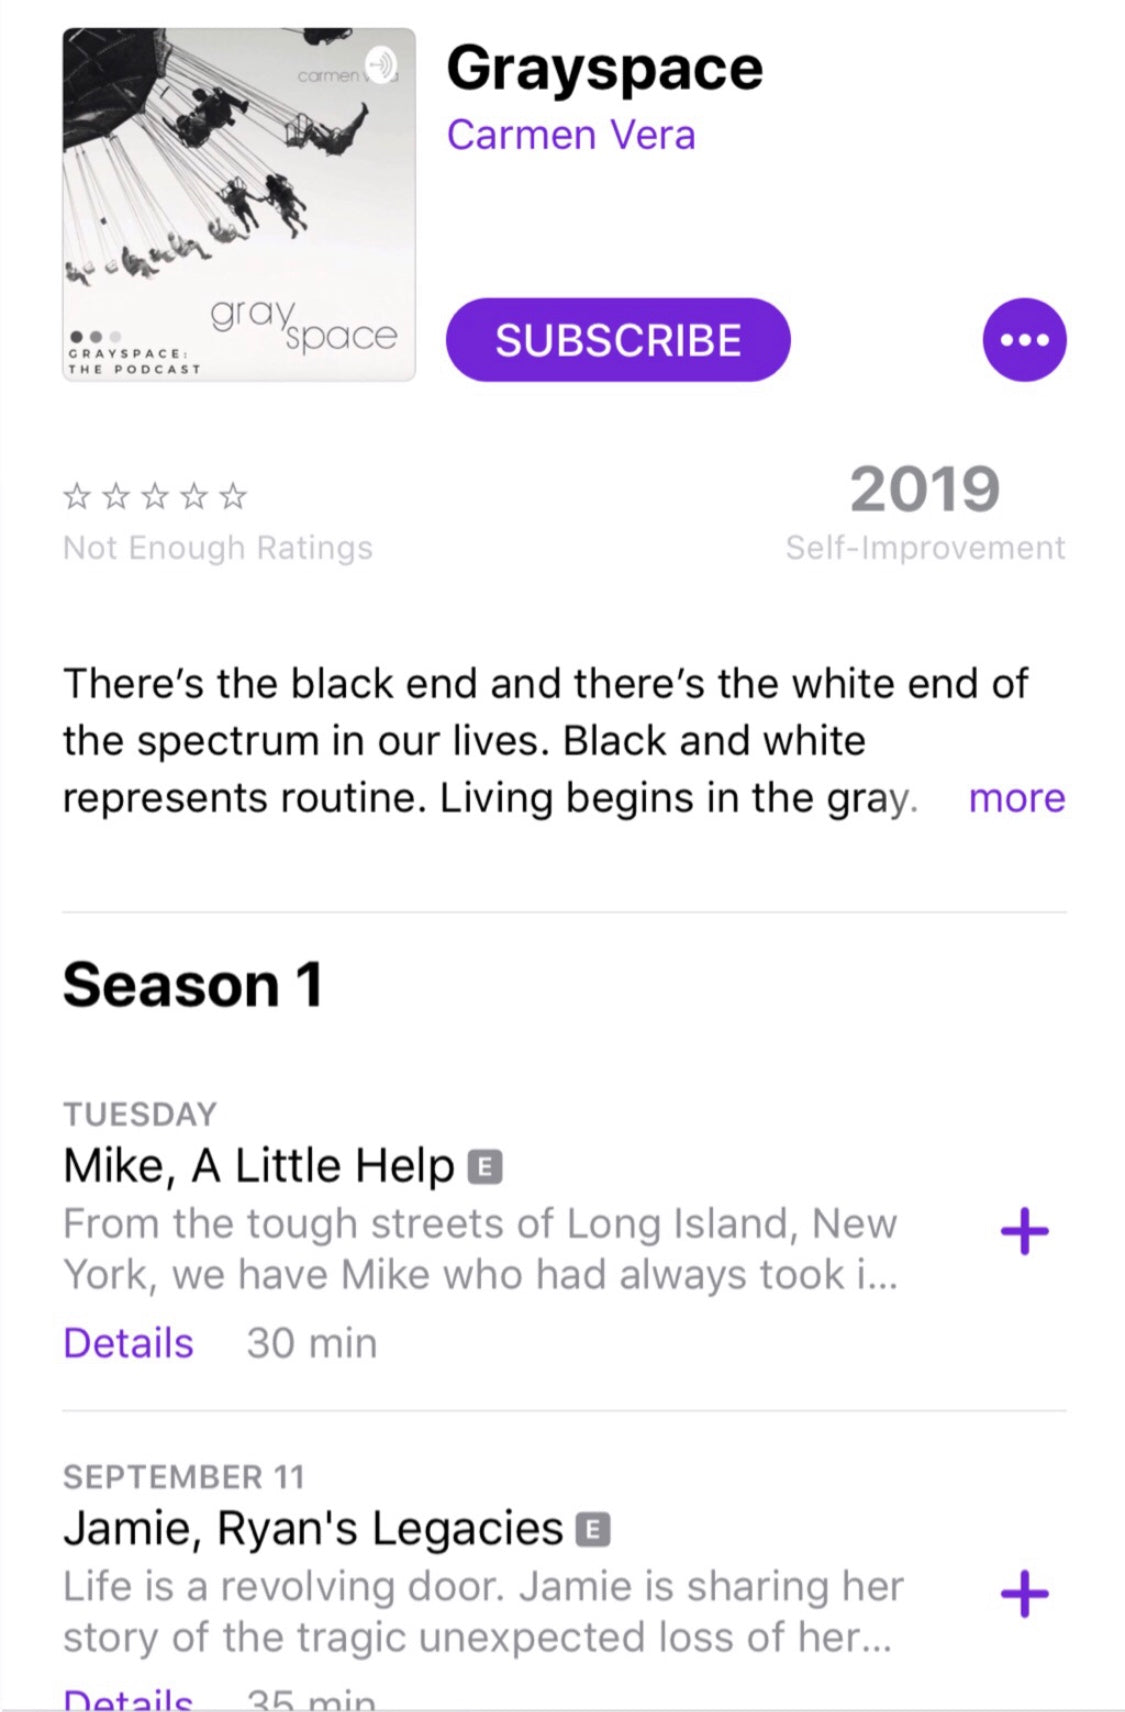 We're available on Apple Podcasts!